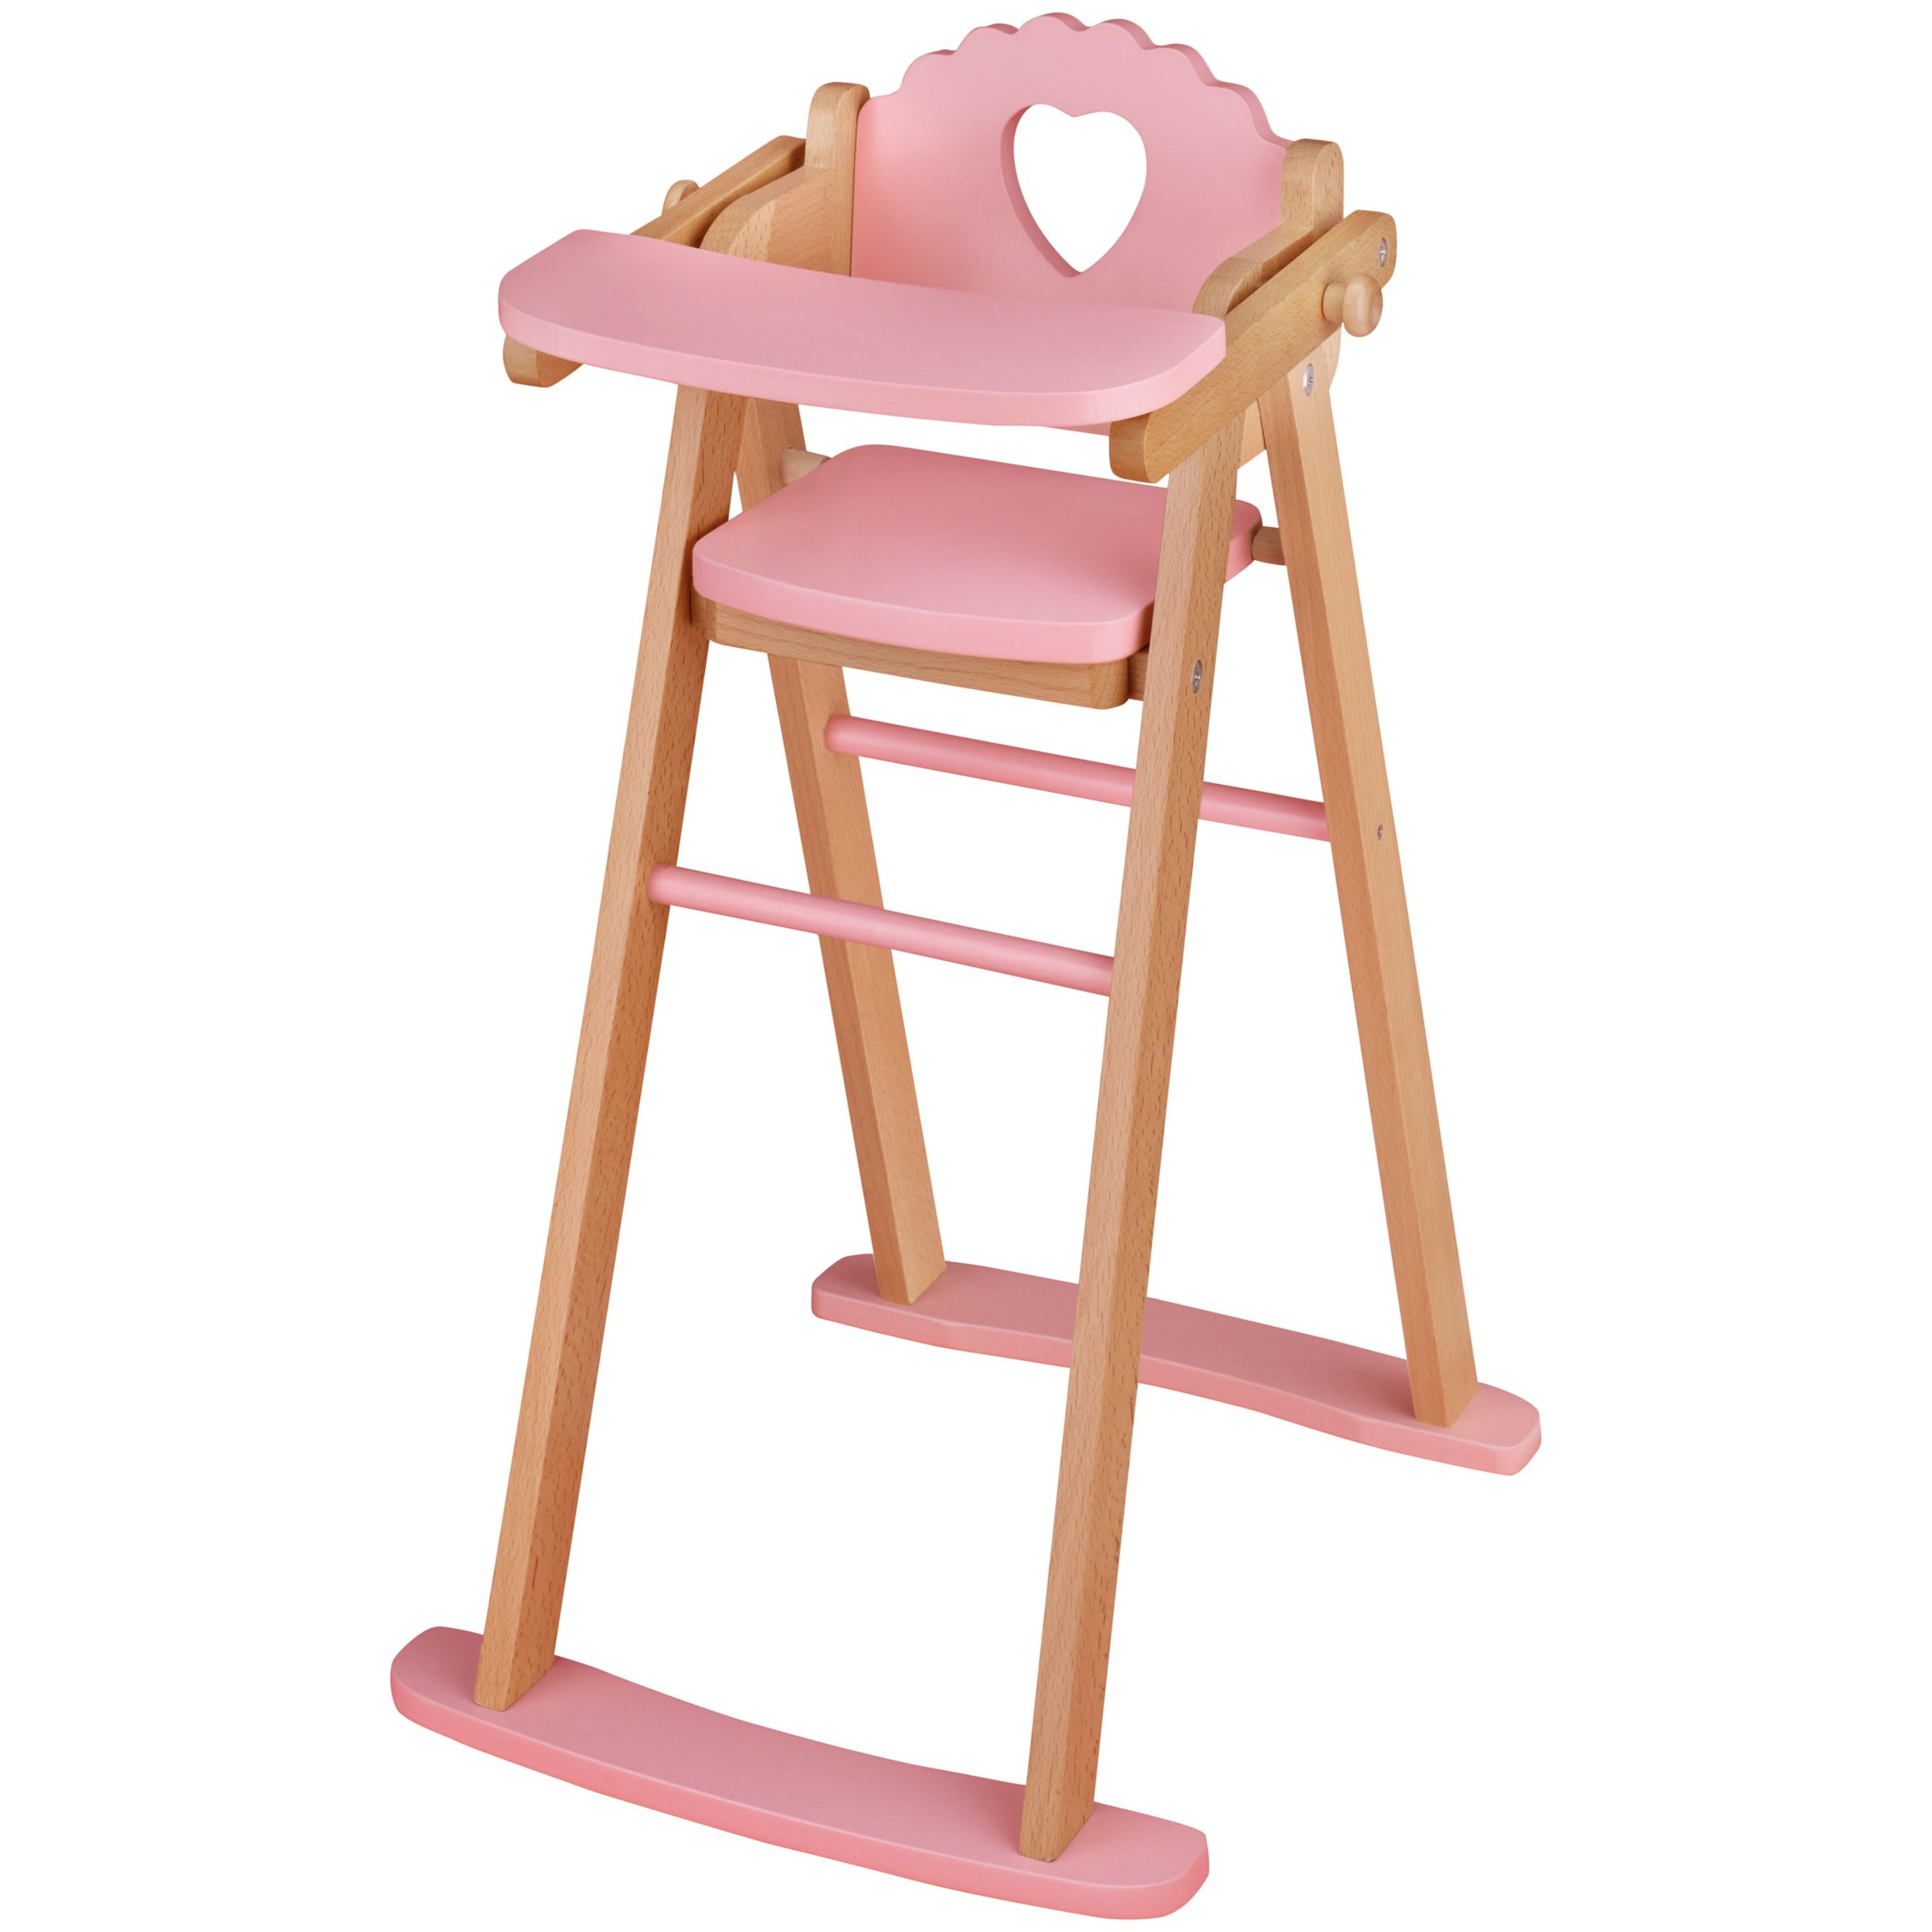 John Lewis Doll's High Chair